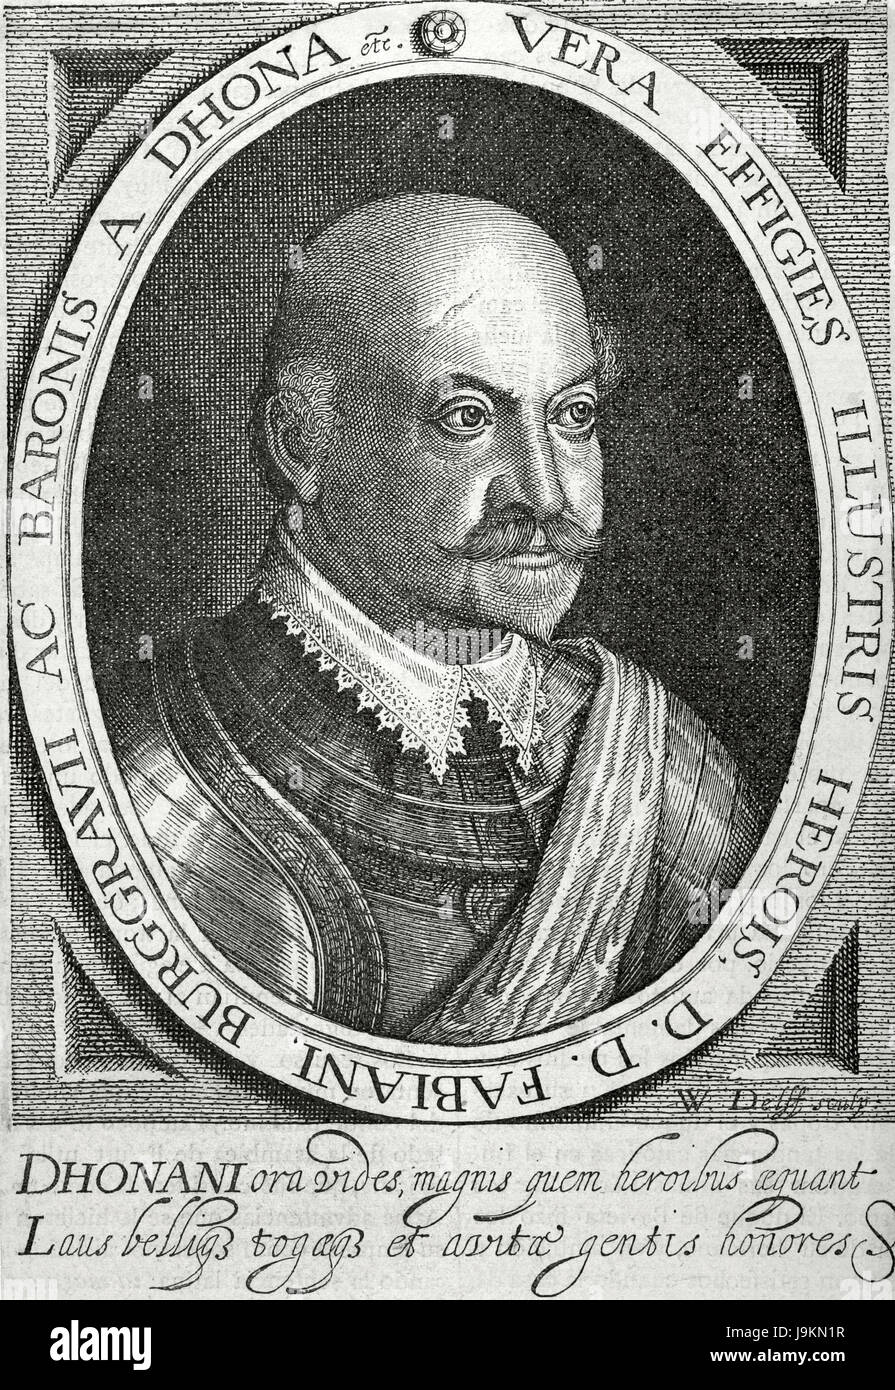 Fabian Dohna (1550-1621). German officer and Burgrave of Dohna. Portrait. Engraving by William Jacobzen Delff (1580 - Stock Image